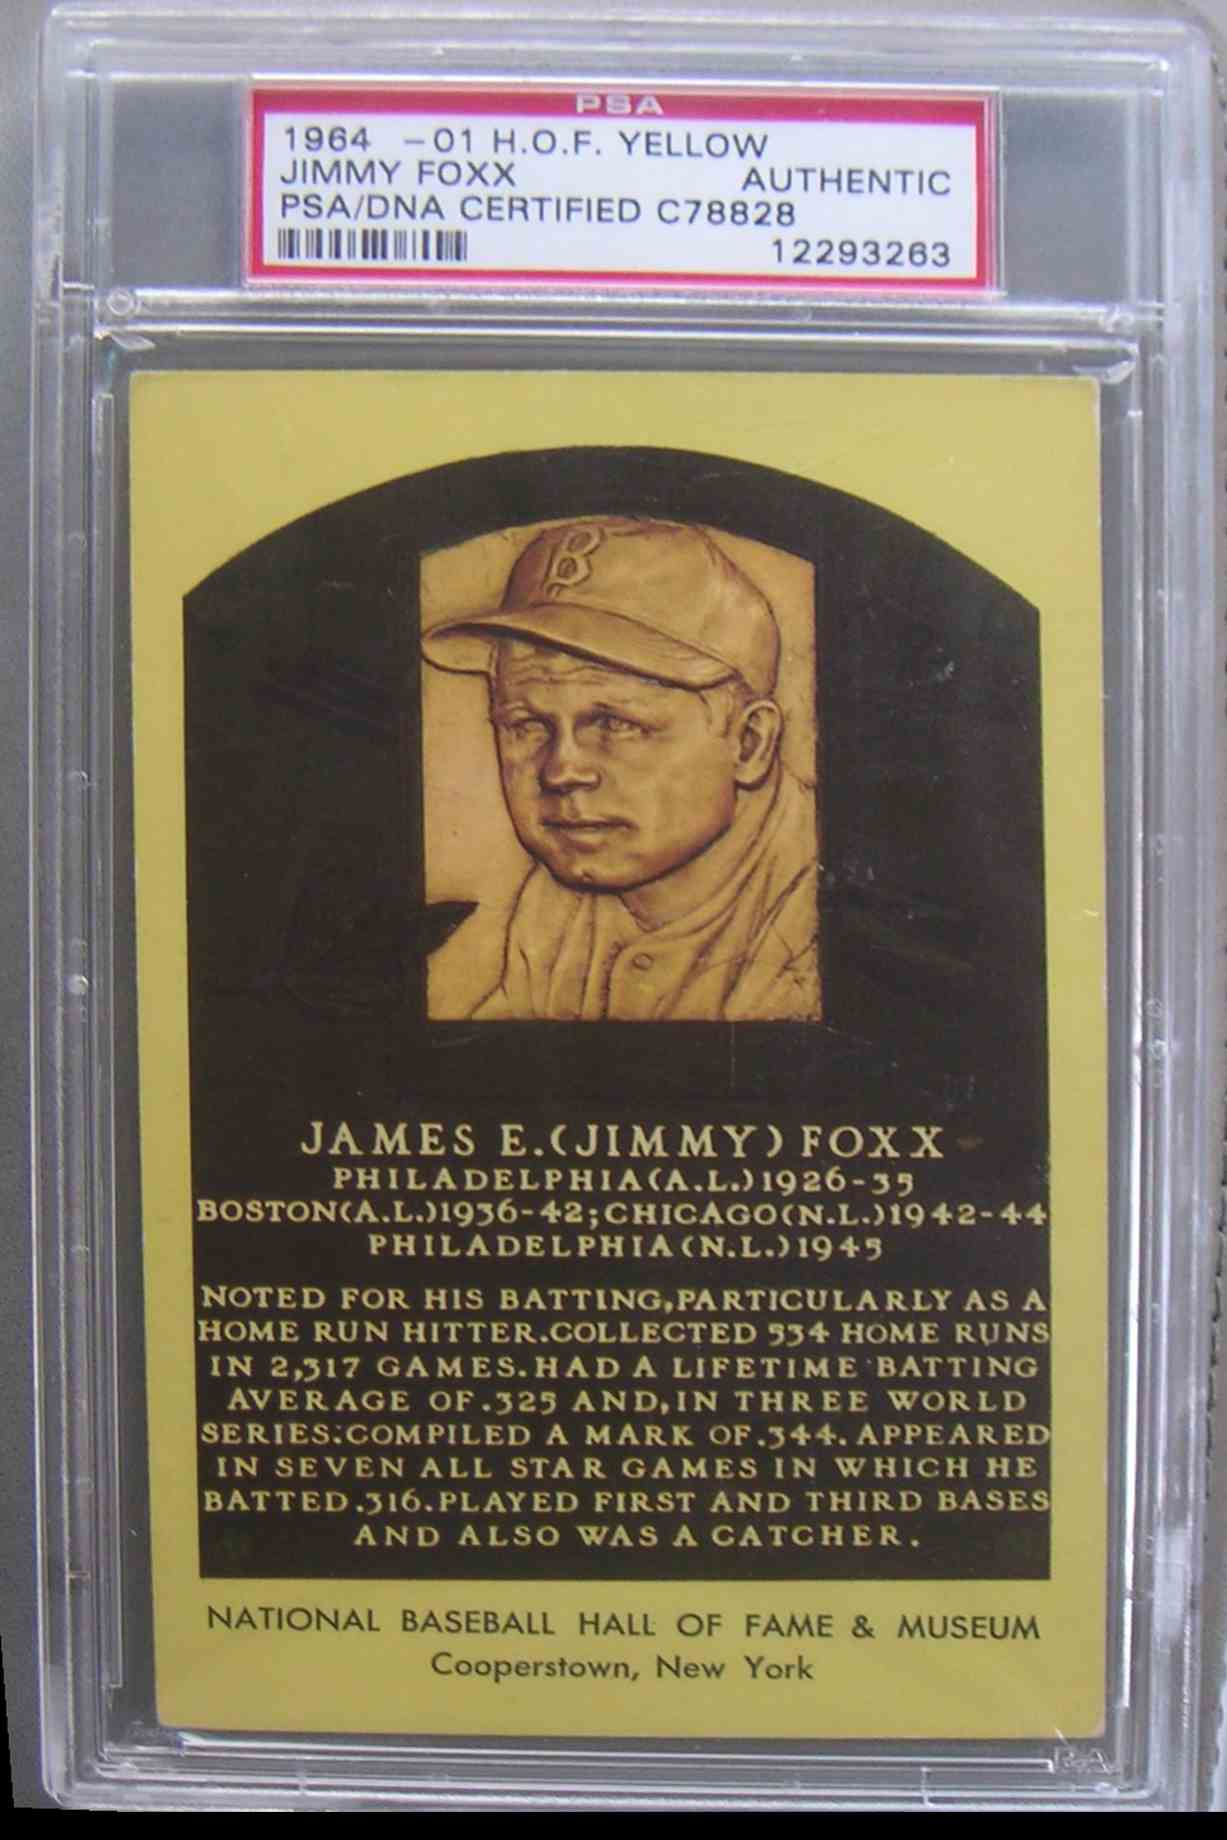 1964 Gold Hall Of Fame Plaque Jimmie Foxx #X card front image